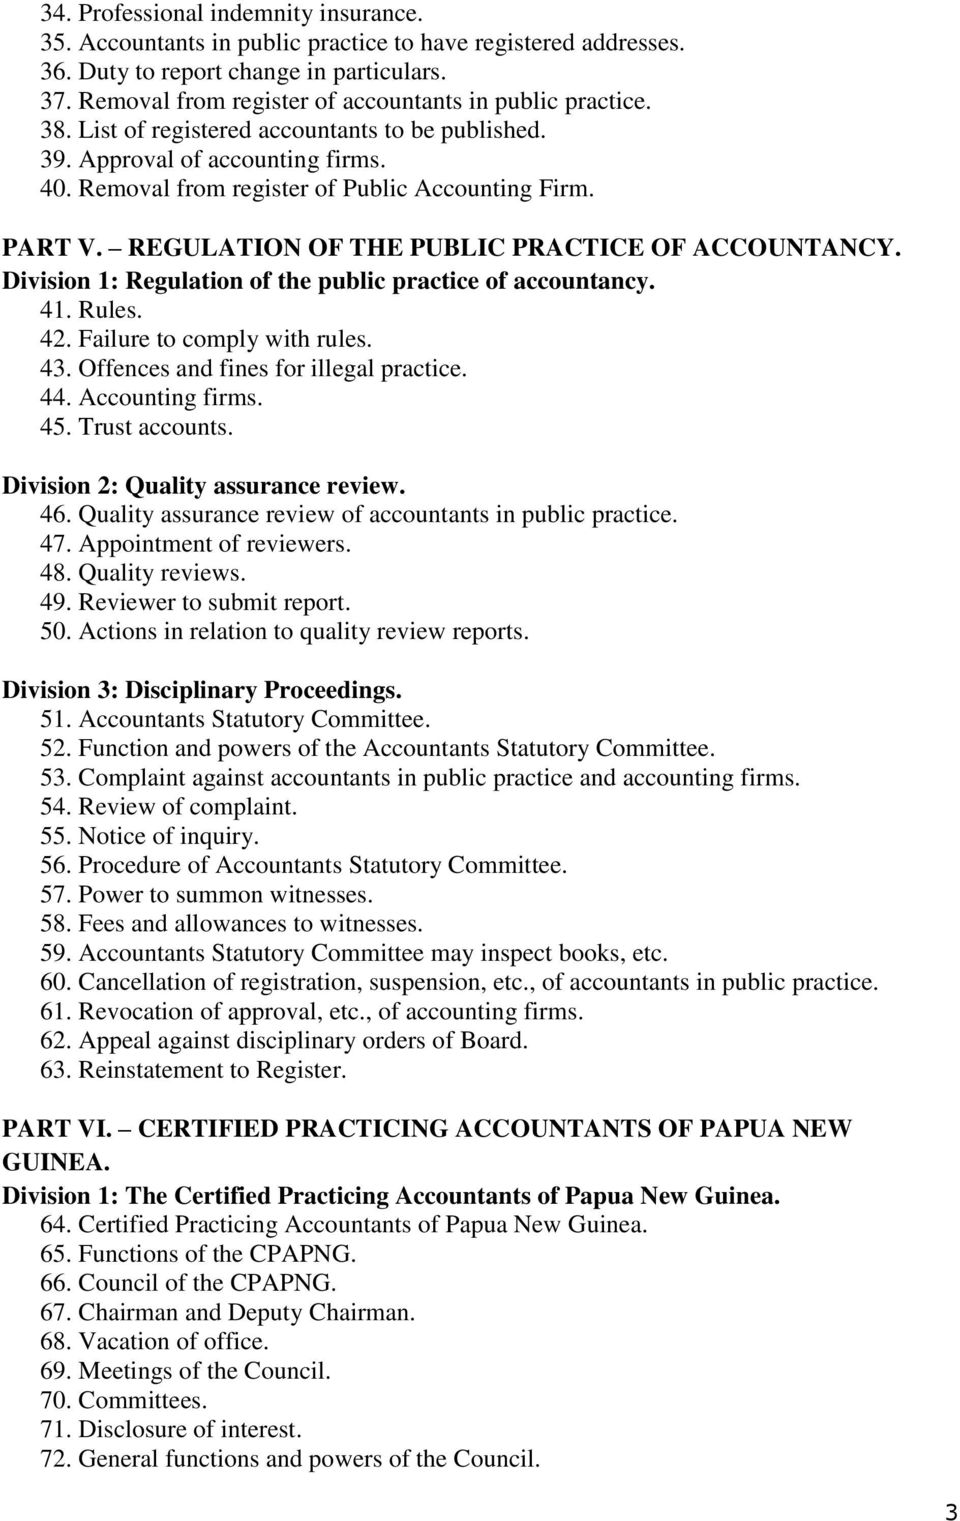 PART V. REGULATION OF THE PUBLIC PRACTICE OF ACCOUNTANCY. Division 1: Regulation of the public practice of accountancy. 41. Rules. 42. Failure to comply with rules. 43.